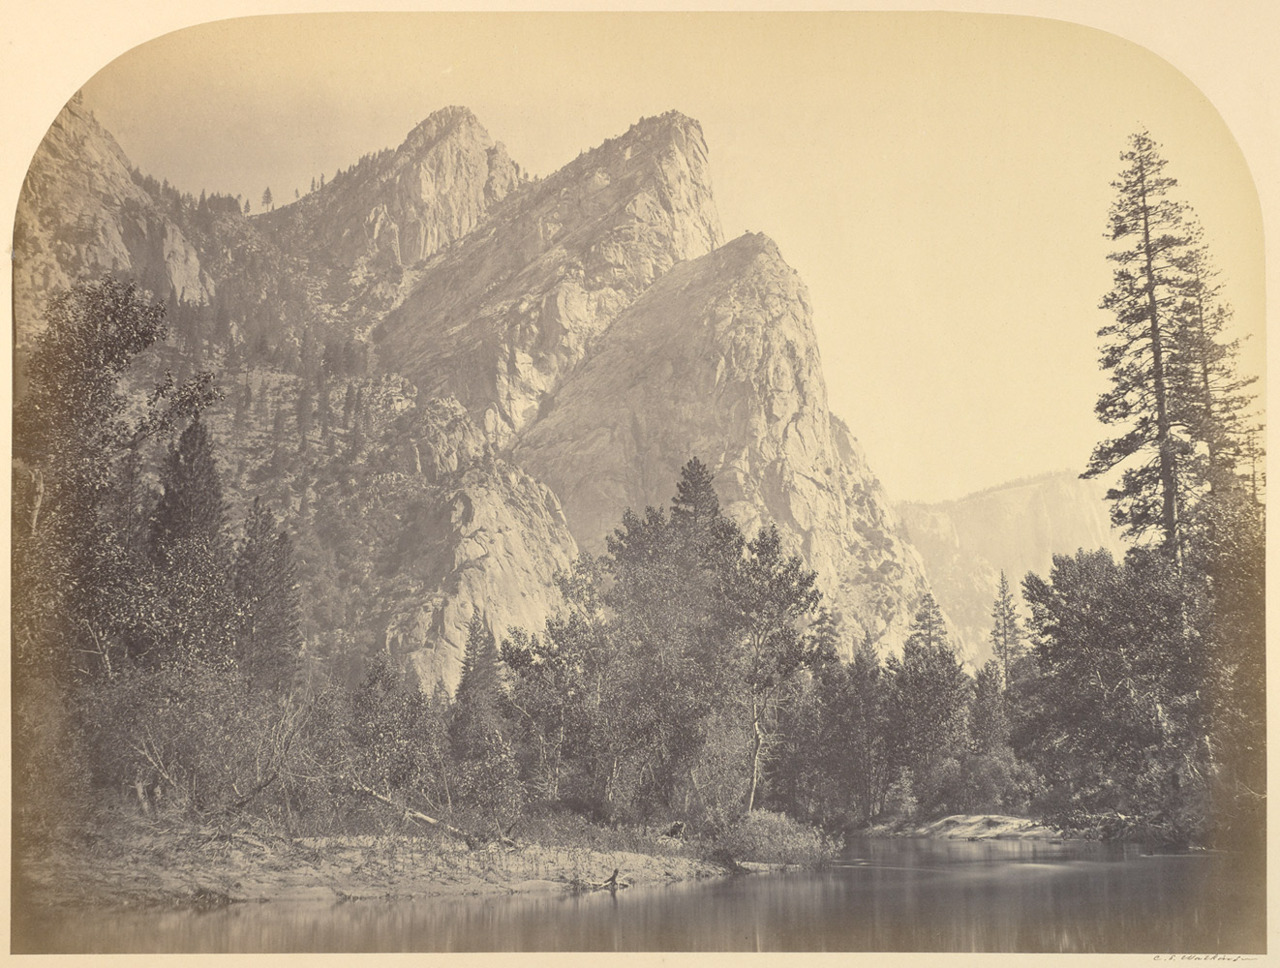 The Three Brothers, Yosemite. 1861. 'Carleton Watkins: The Complete Mammoth Photographs,' by Weston Naef and Christine Hult-Lewis, has been awarded the 2012 Kraszna-Krausz Best Photography Book Award. Judge Jem Southam explains how the decision was made. See more here.